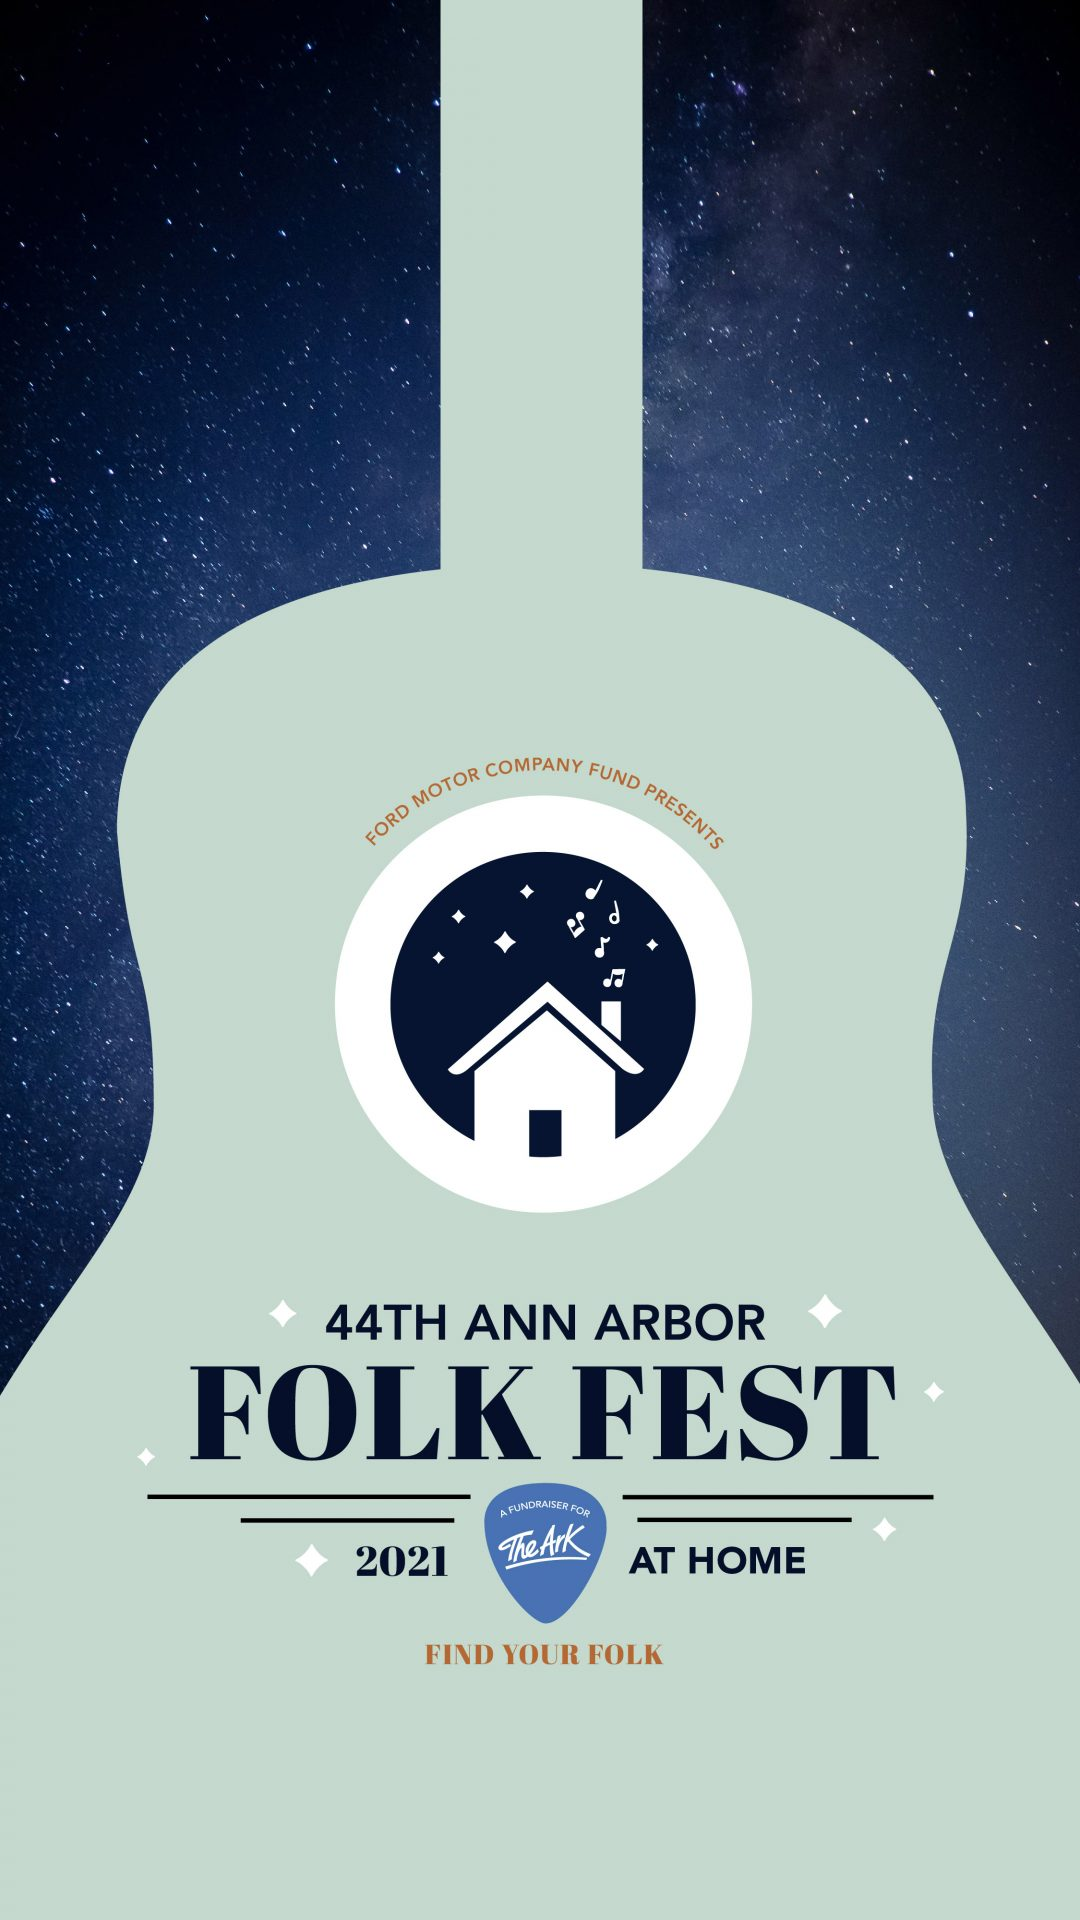 Join Colin at the 44th Annual Ann Arbor Folk Festival!